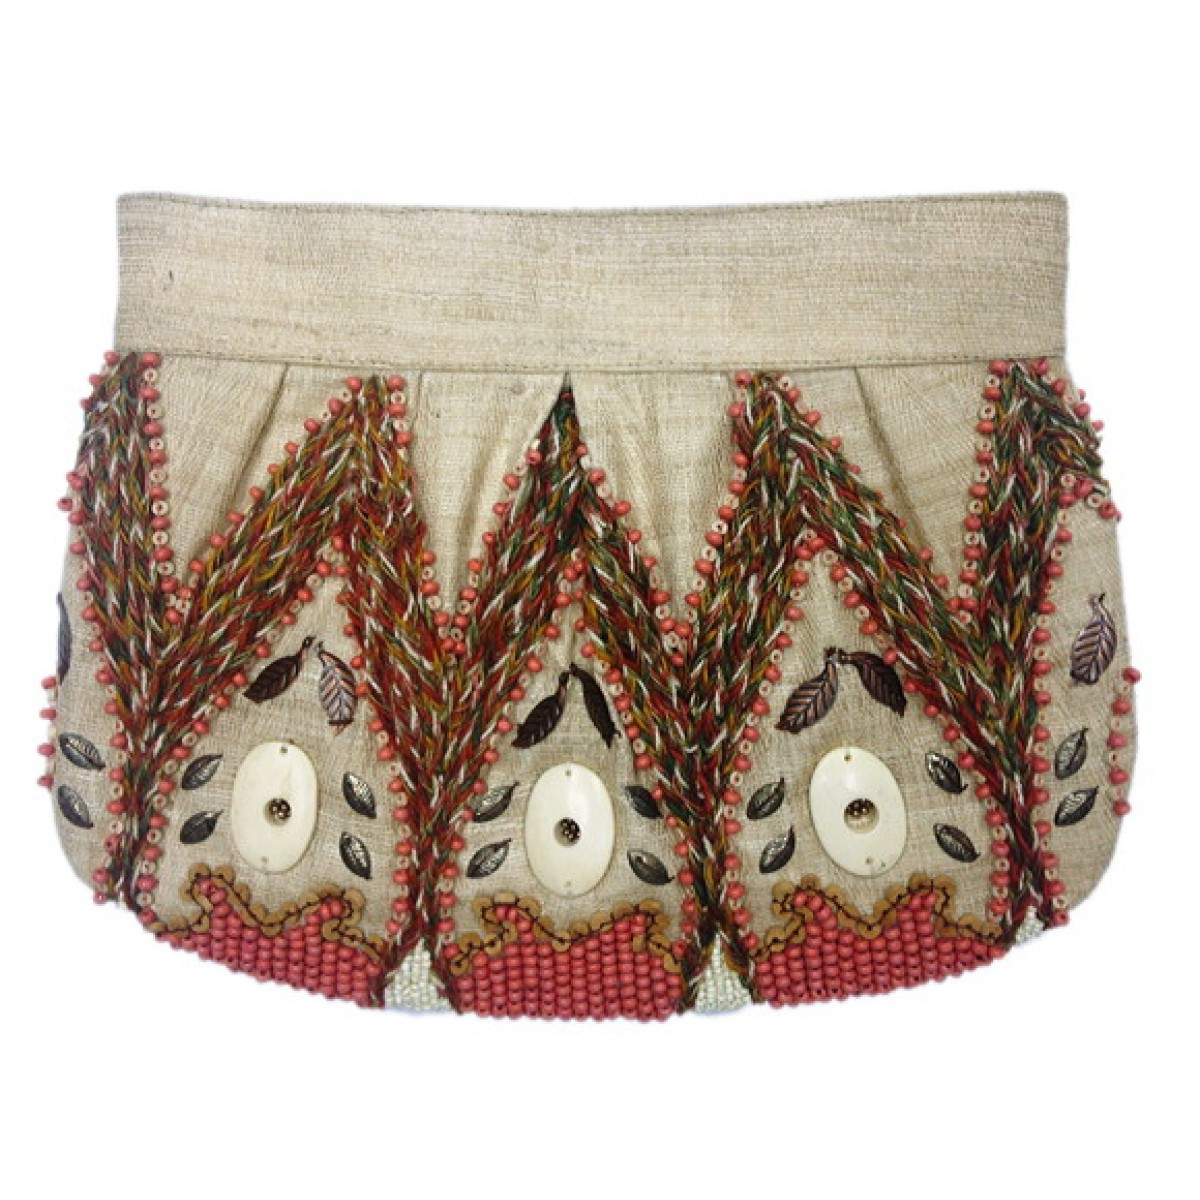 Pleated clutch With Bone / Wood Beads